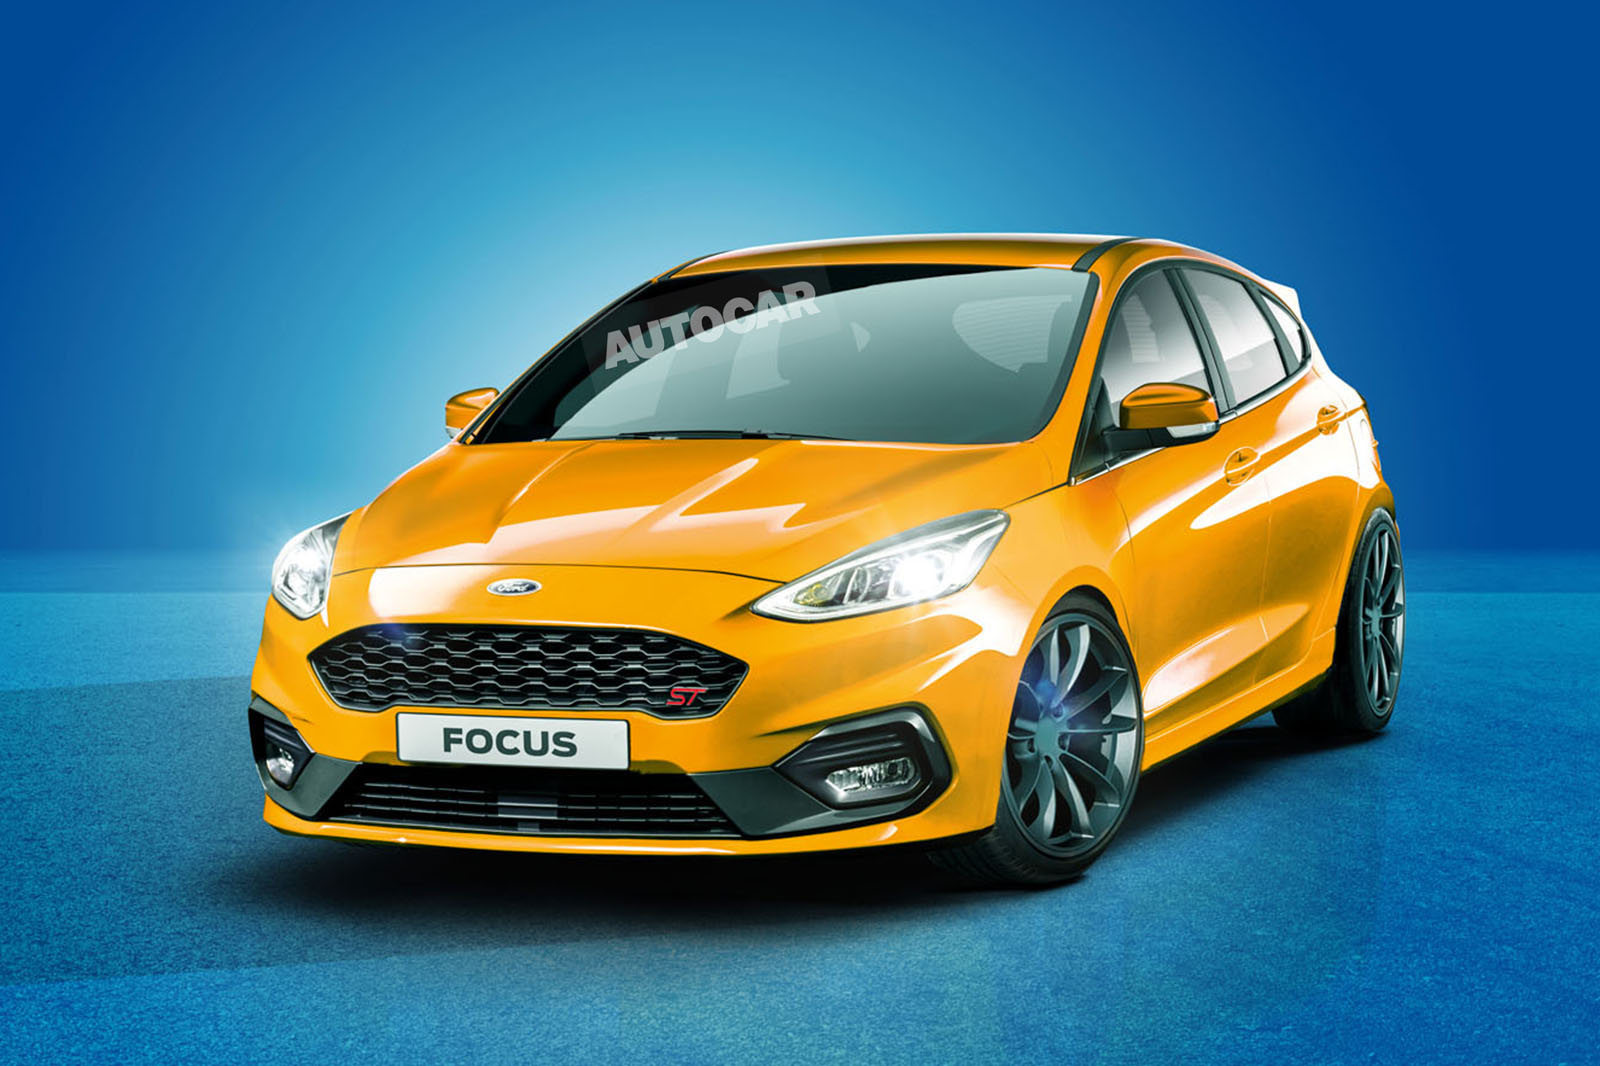 275bhp ford focus st to head 2018 line up autocar. Black Bedroom Furniture Sets. Home Design Ideas